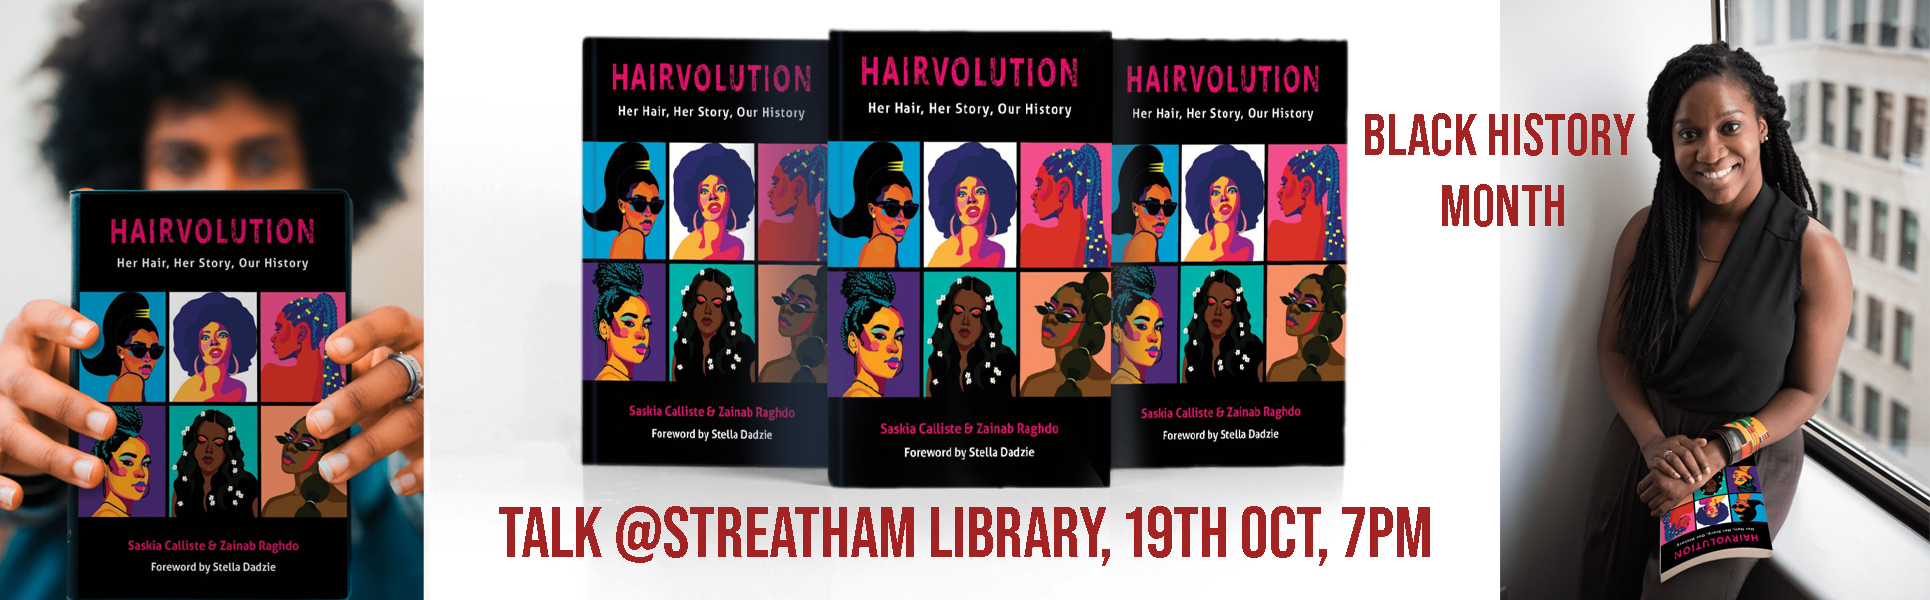 Hairvolution: Her Hair, Her Story, Our History